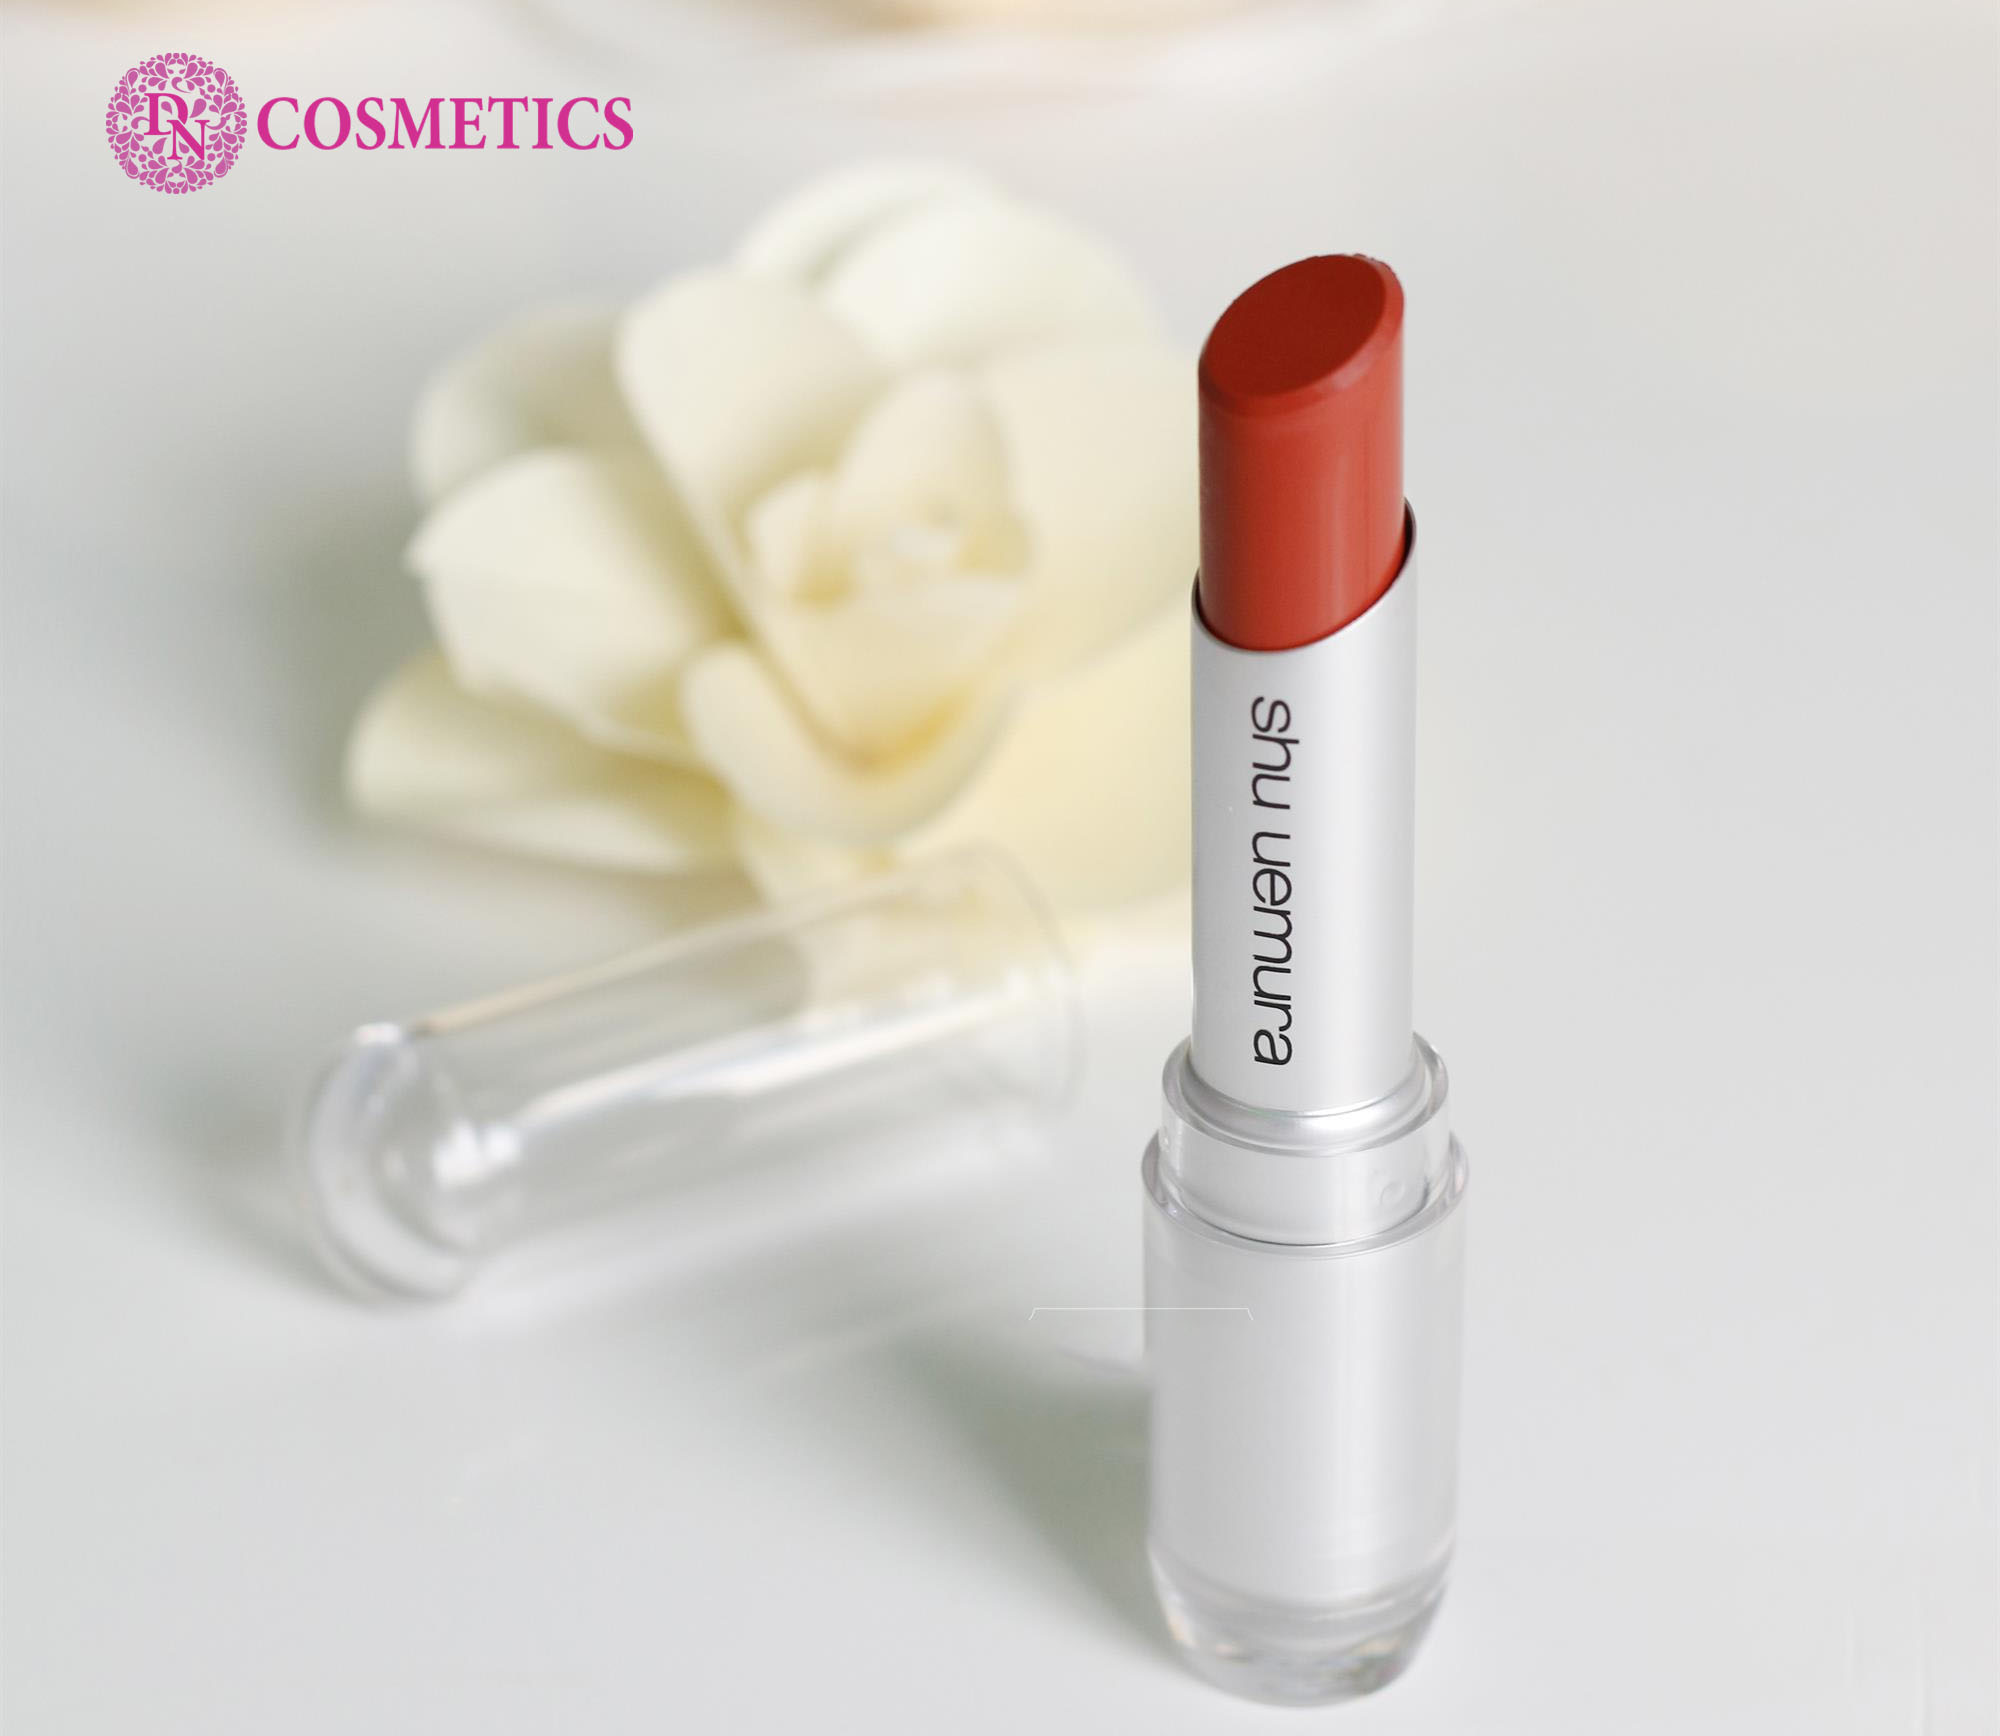 son-shu-uemura-rouge-unlimited-amplified-1